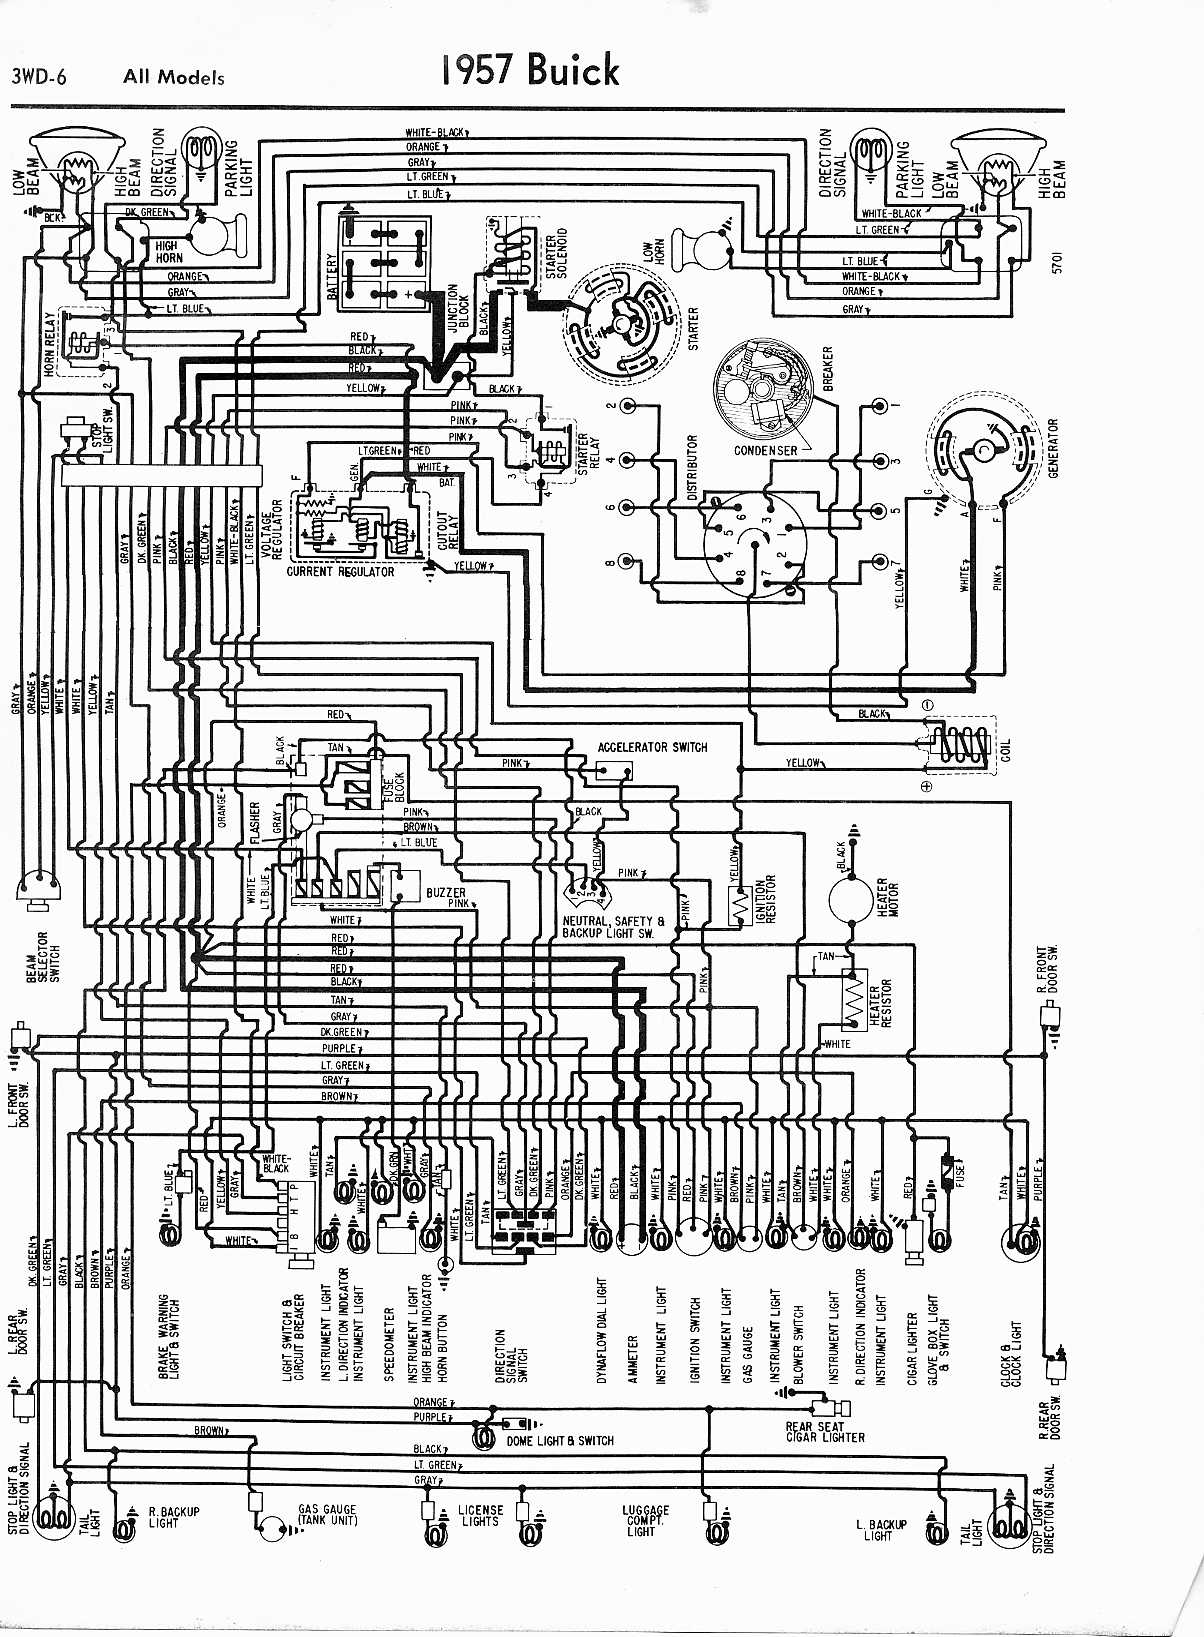 1966 buick wildcat wiring diagram for wall lights 1957 library